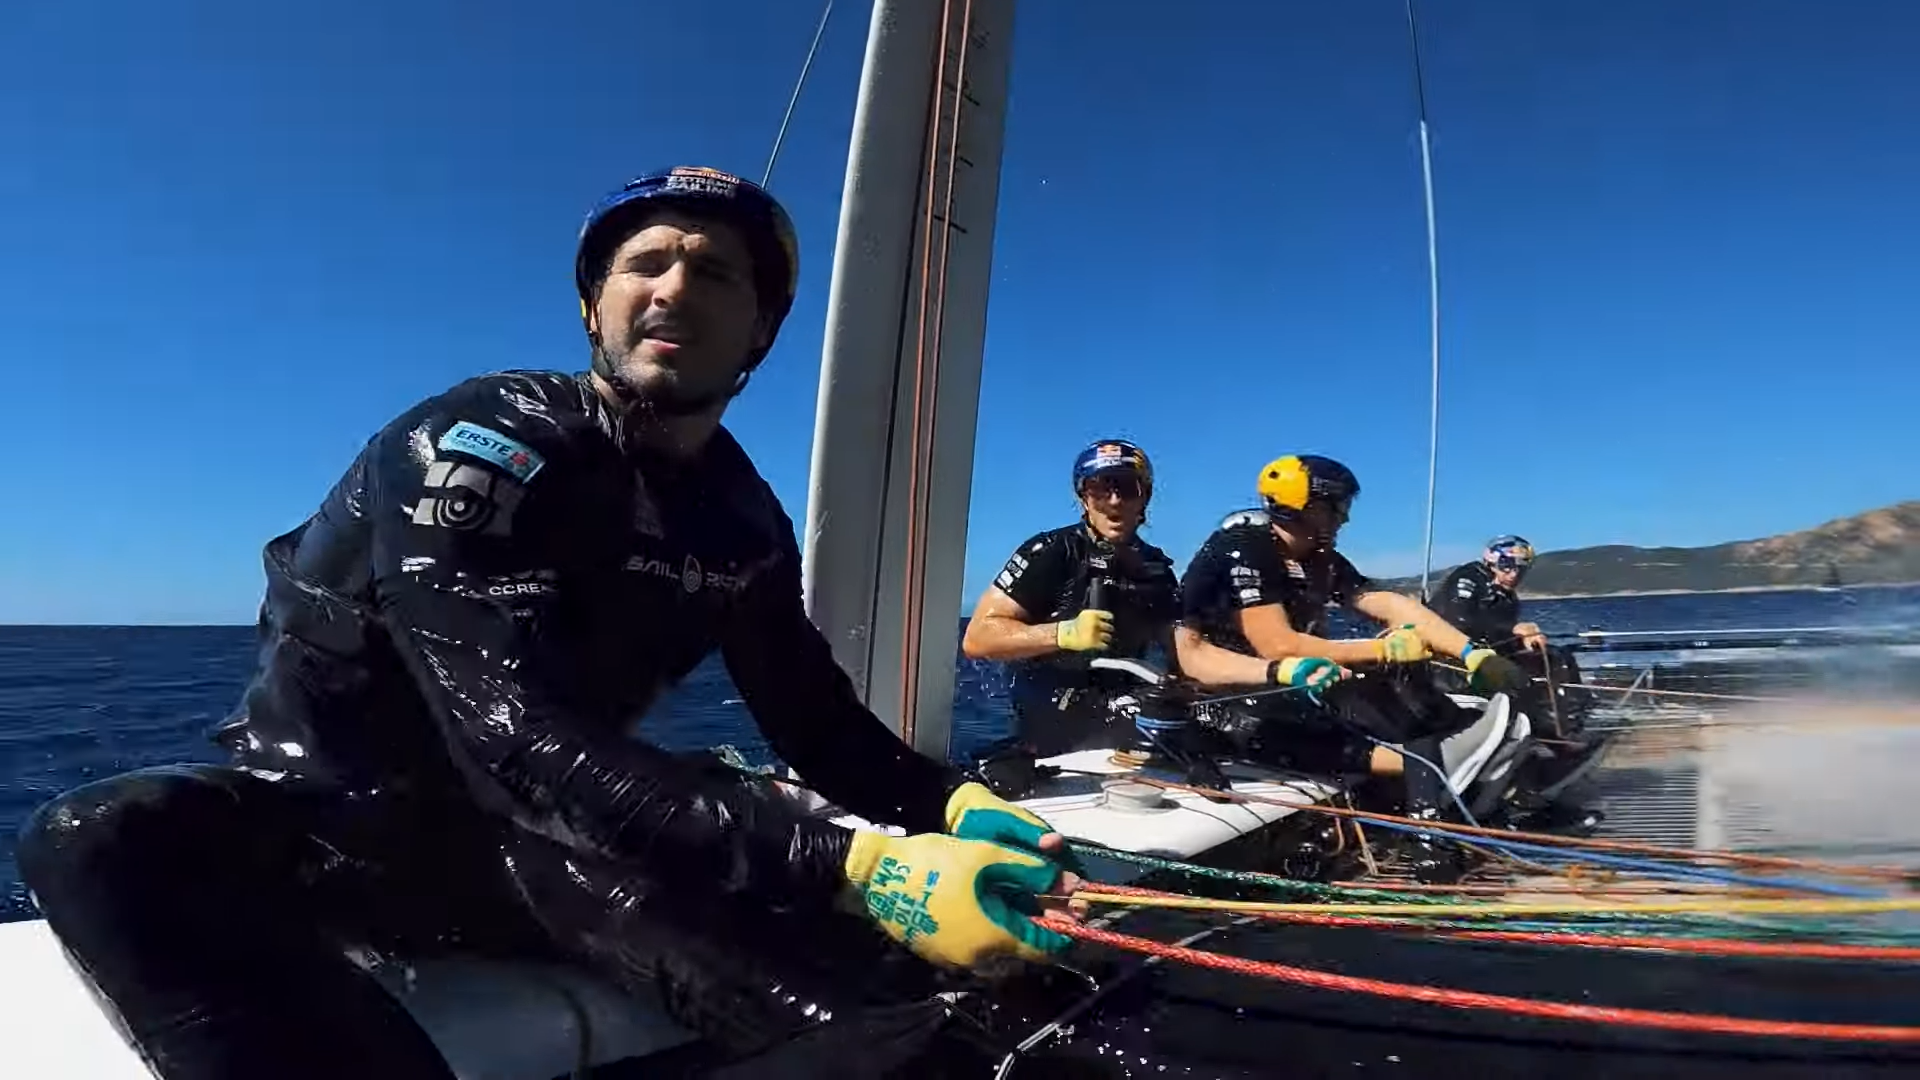 ICARUS Sports Continues Well-Established Partnership With GC32 Racing Tour